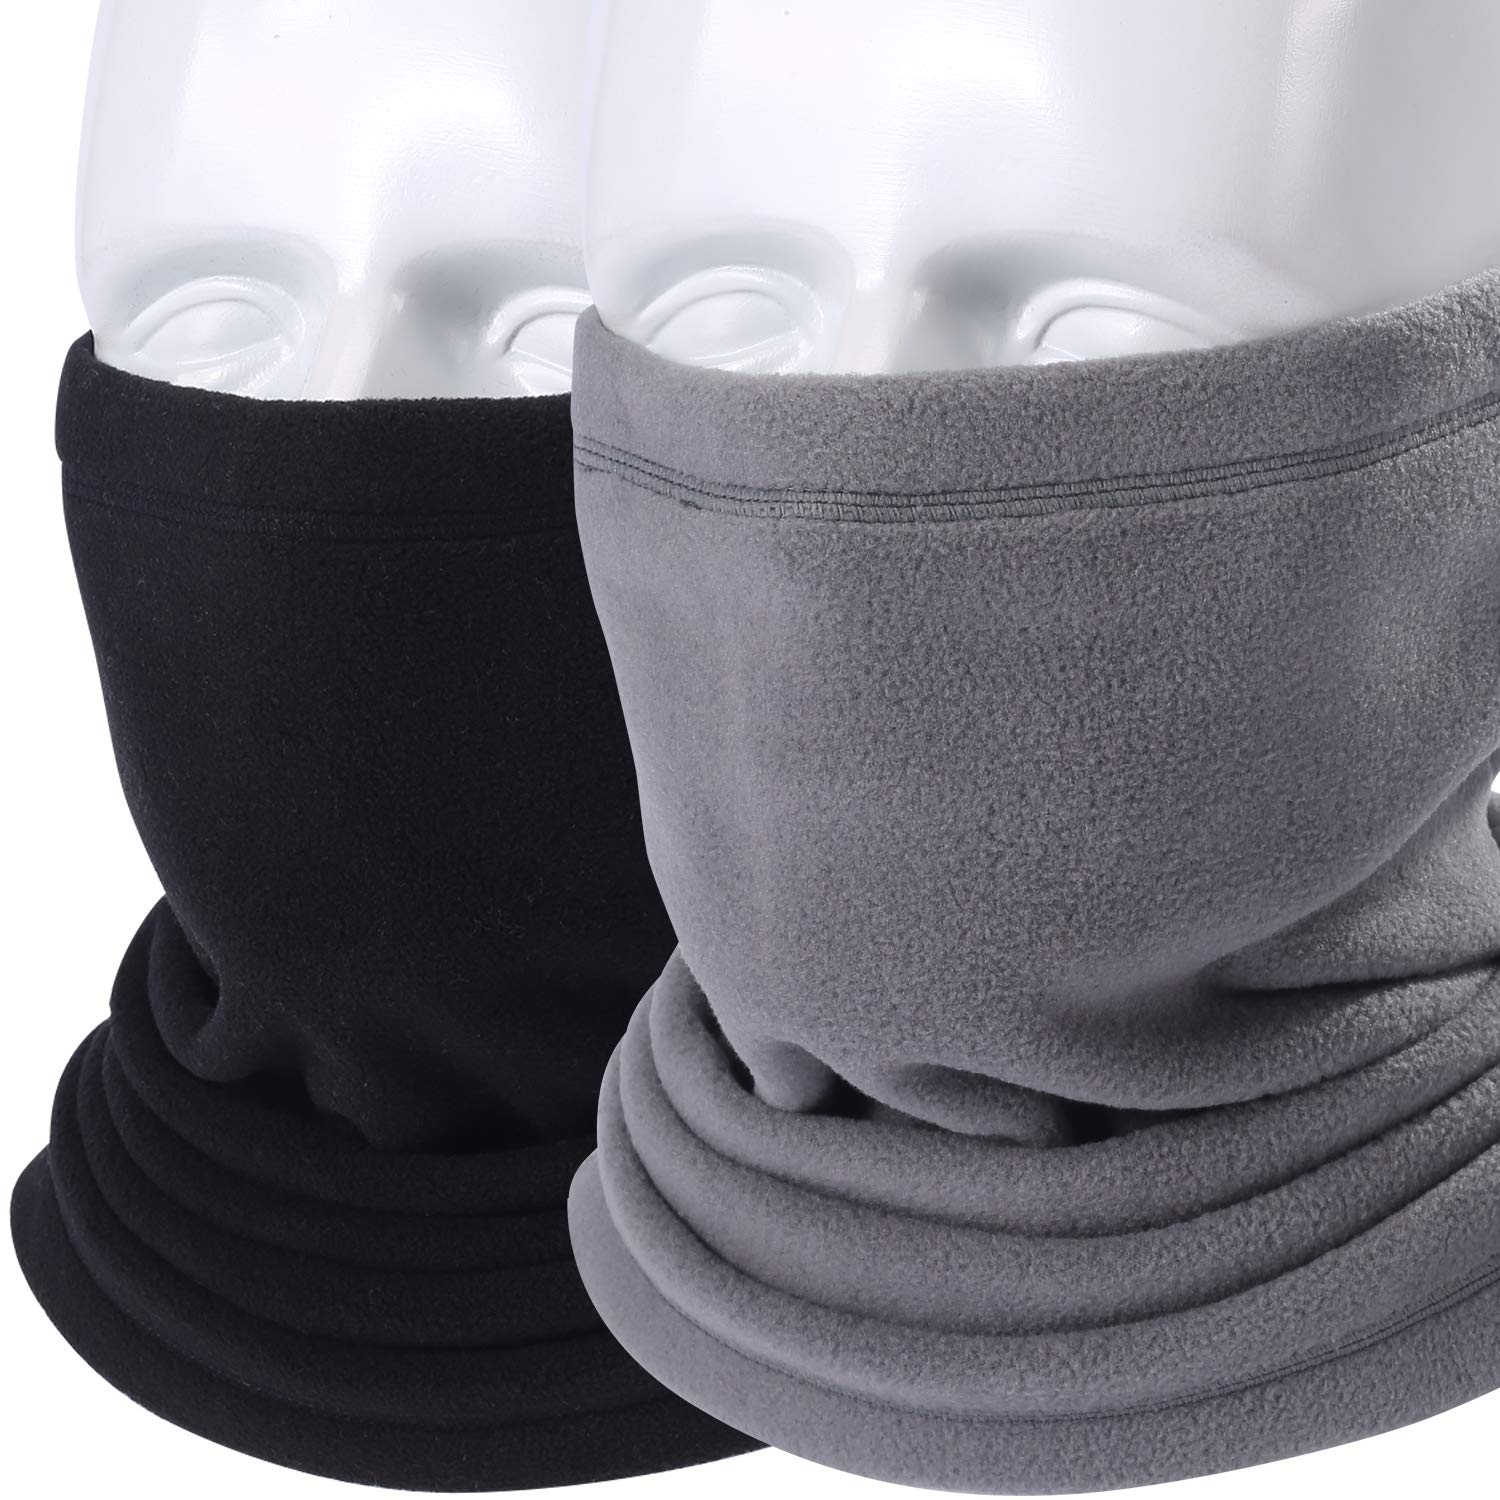 AXBXCX 2 Pack or 1 Pack Neck Warmer Gaiter for Cold Weather